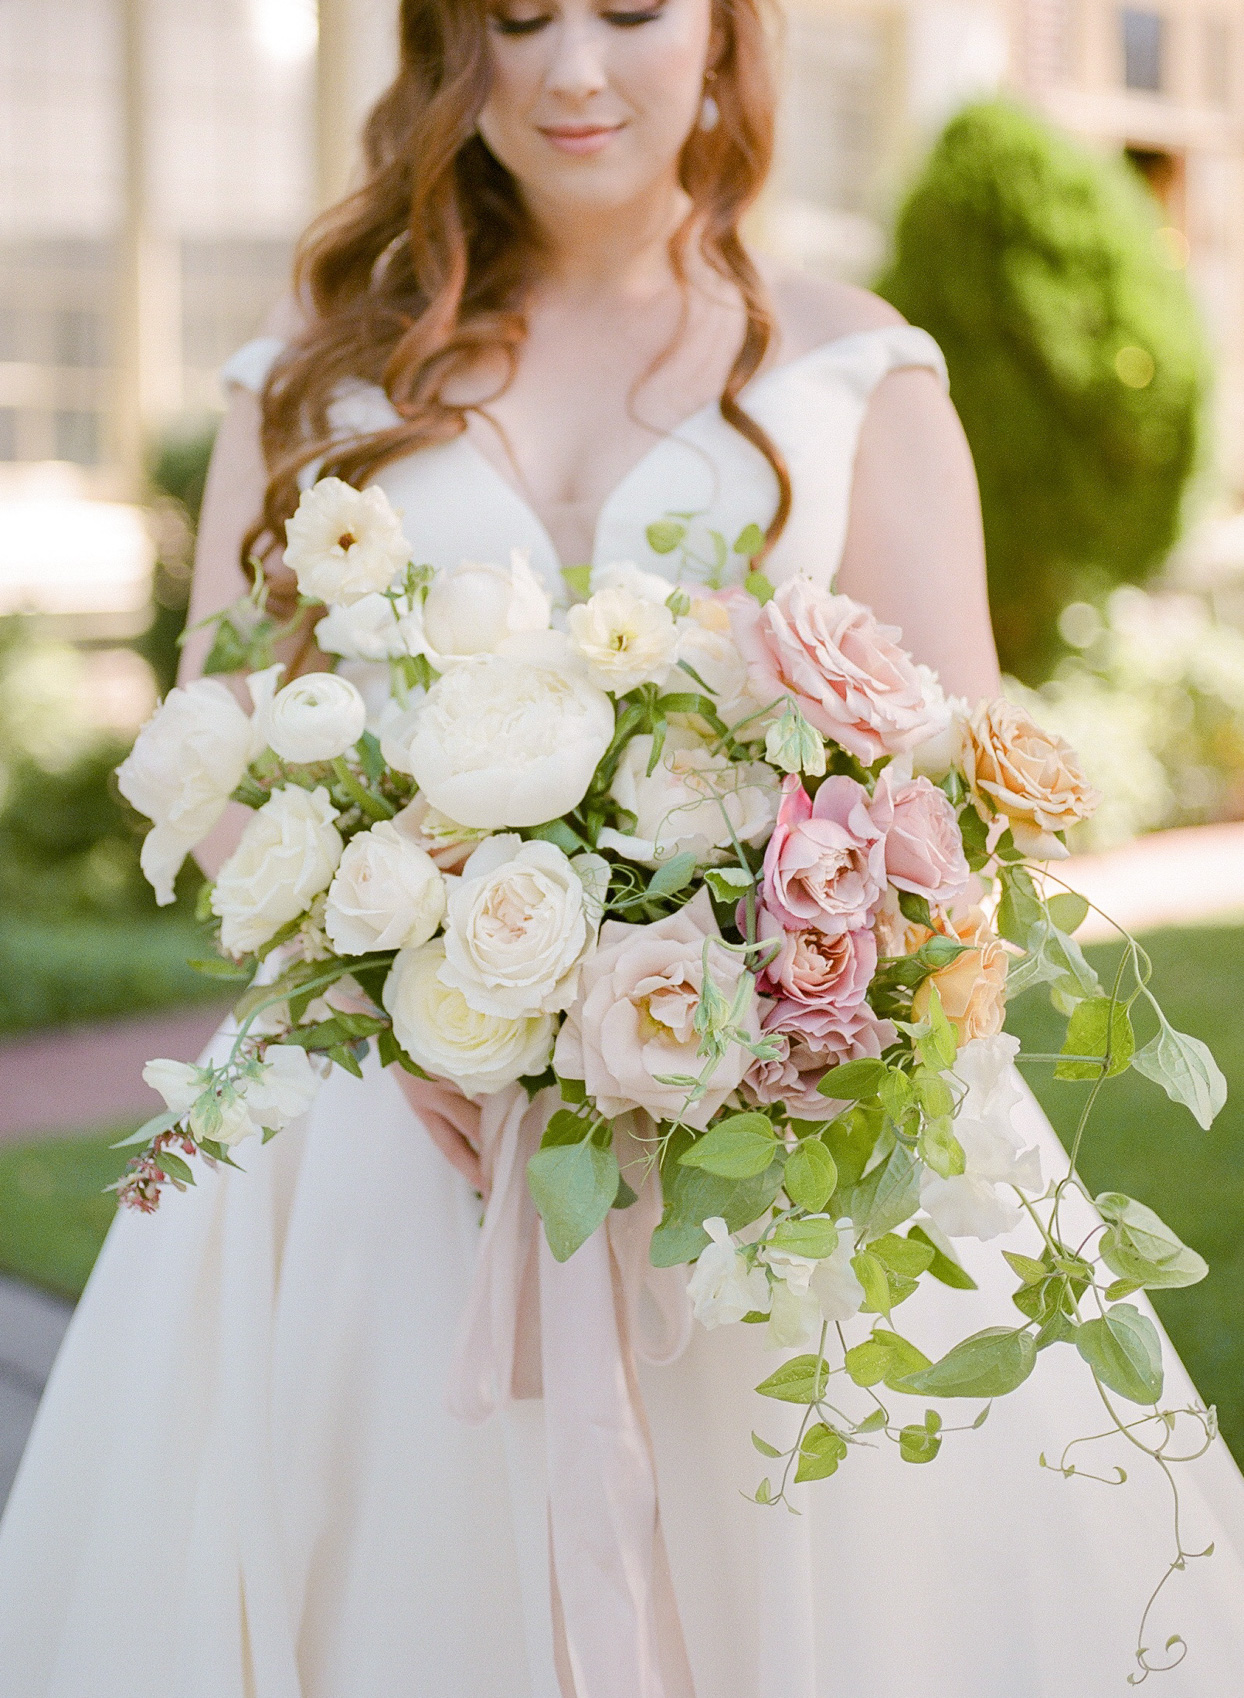 bride holding large white and blush toned rose bouquet